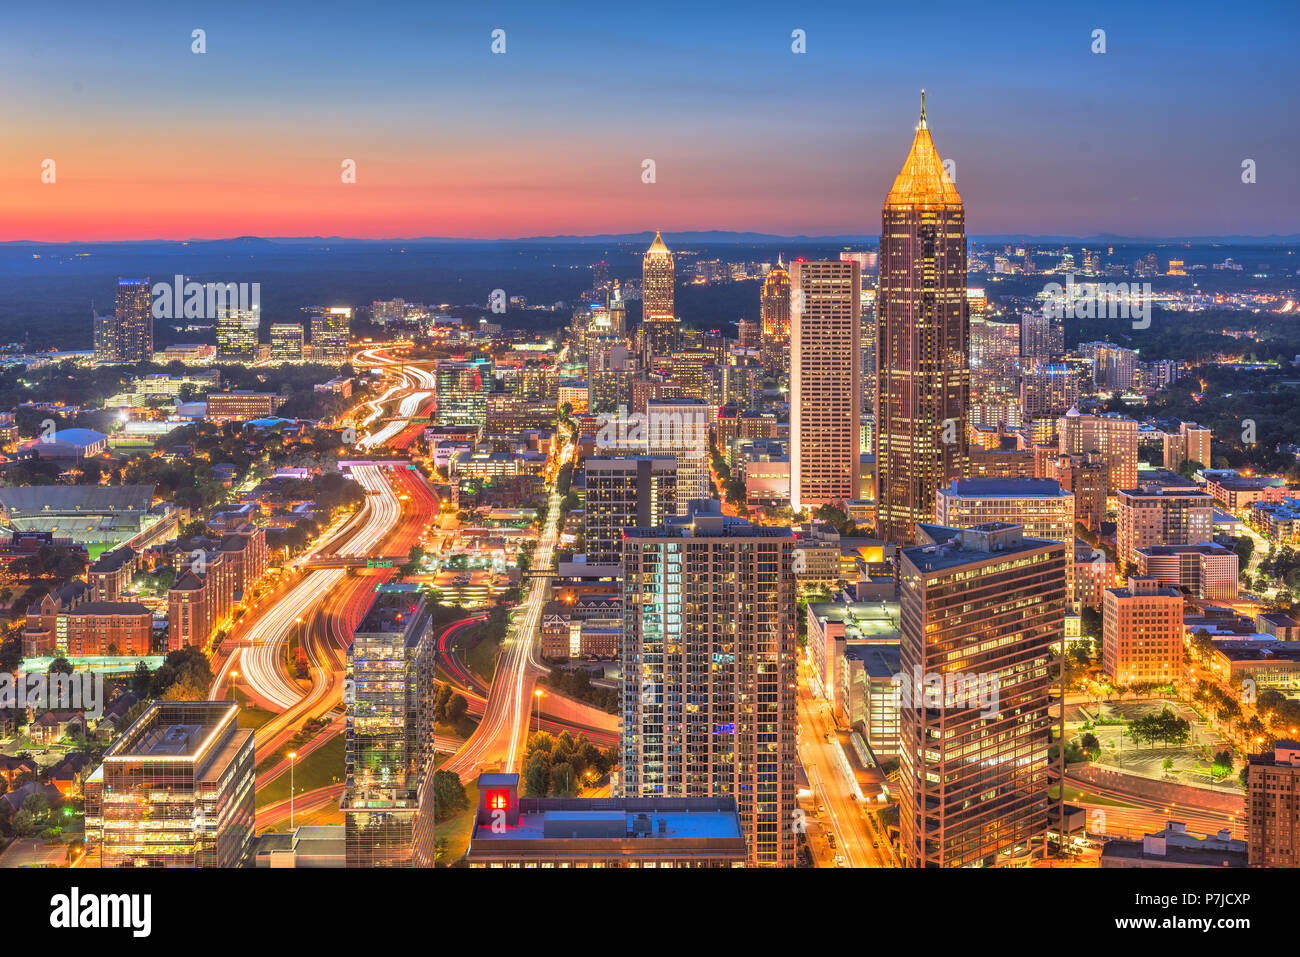 Atlanta, Georgia, USA downtown skyline over the highways at dusk. - Stock Image